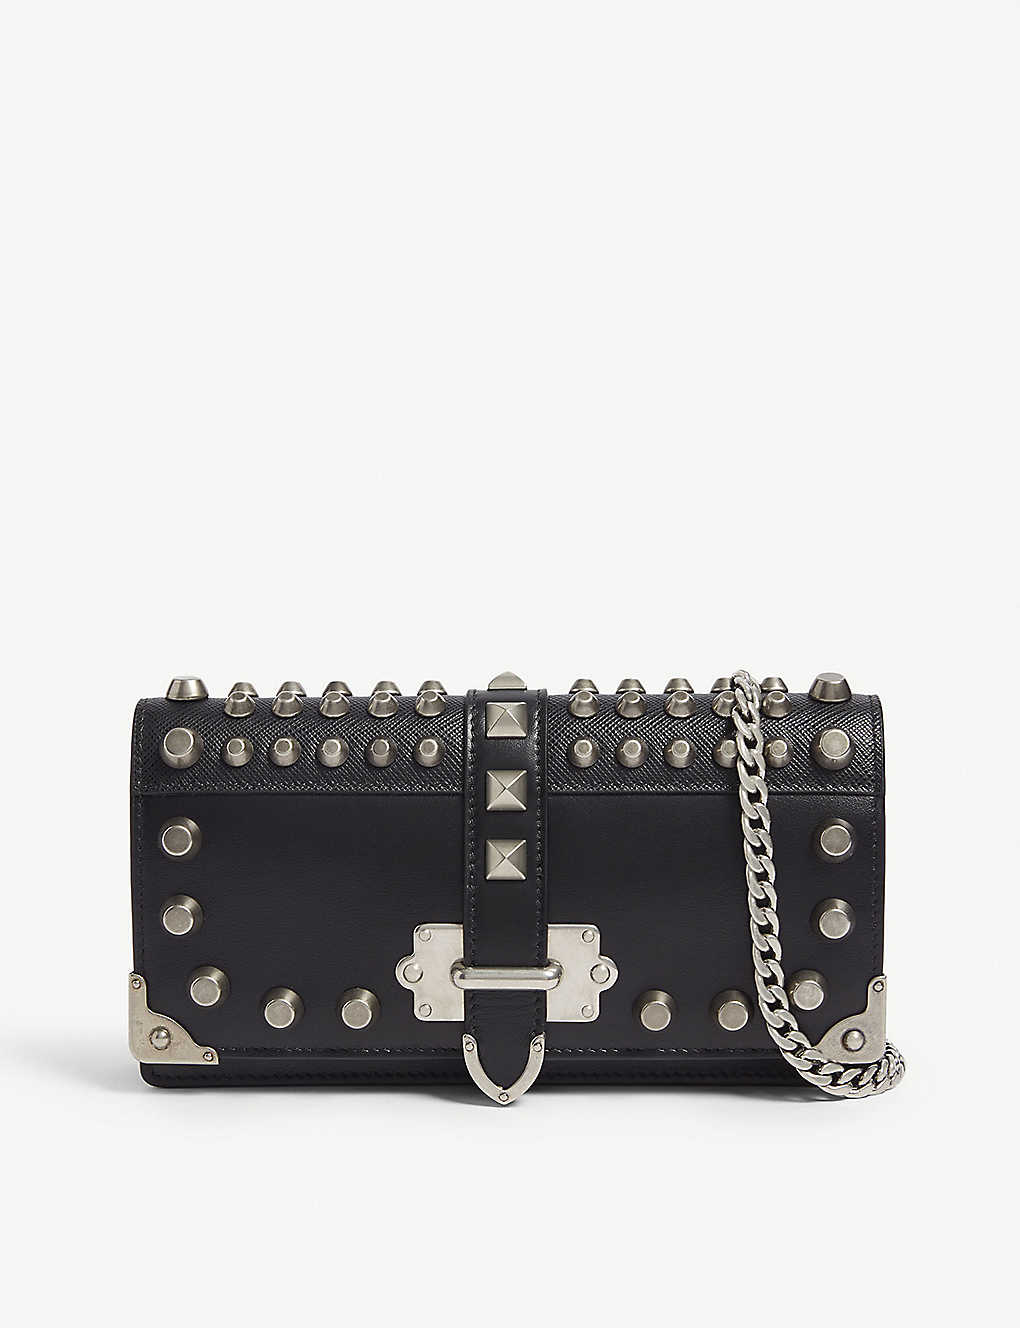 9addaff5ff1b PRADA - Cahier leather mini shoulder bag | Selfridges.com